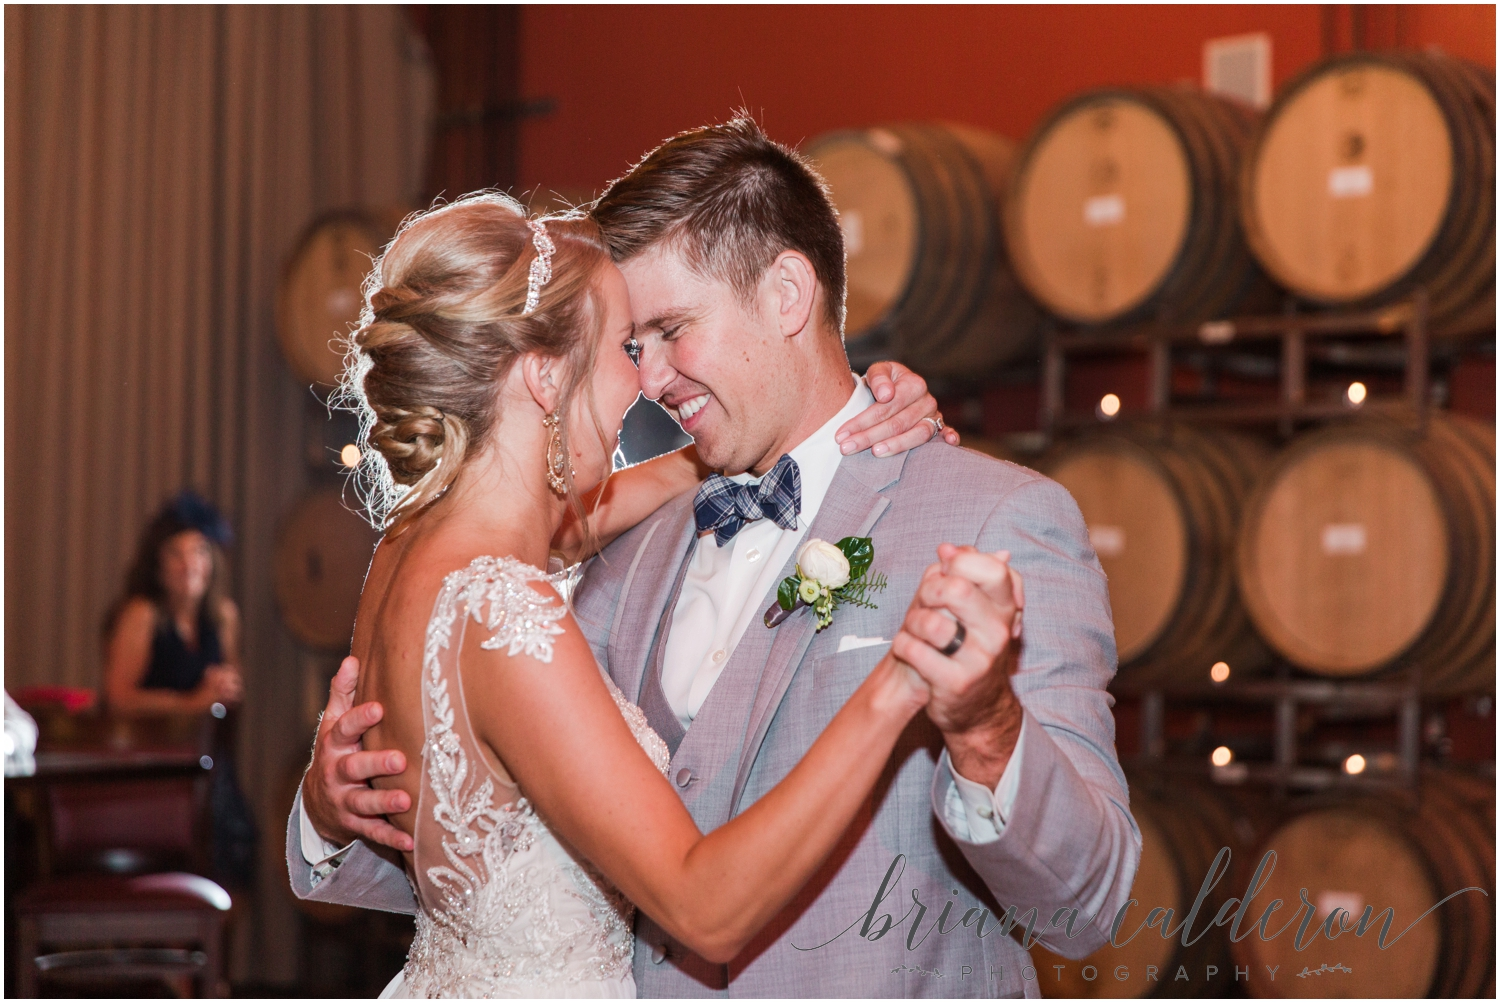 Regale Winery Wedding photos by Briana Calderon Photography_0709.jpg